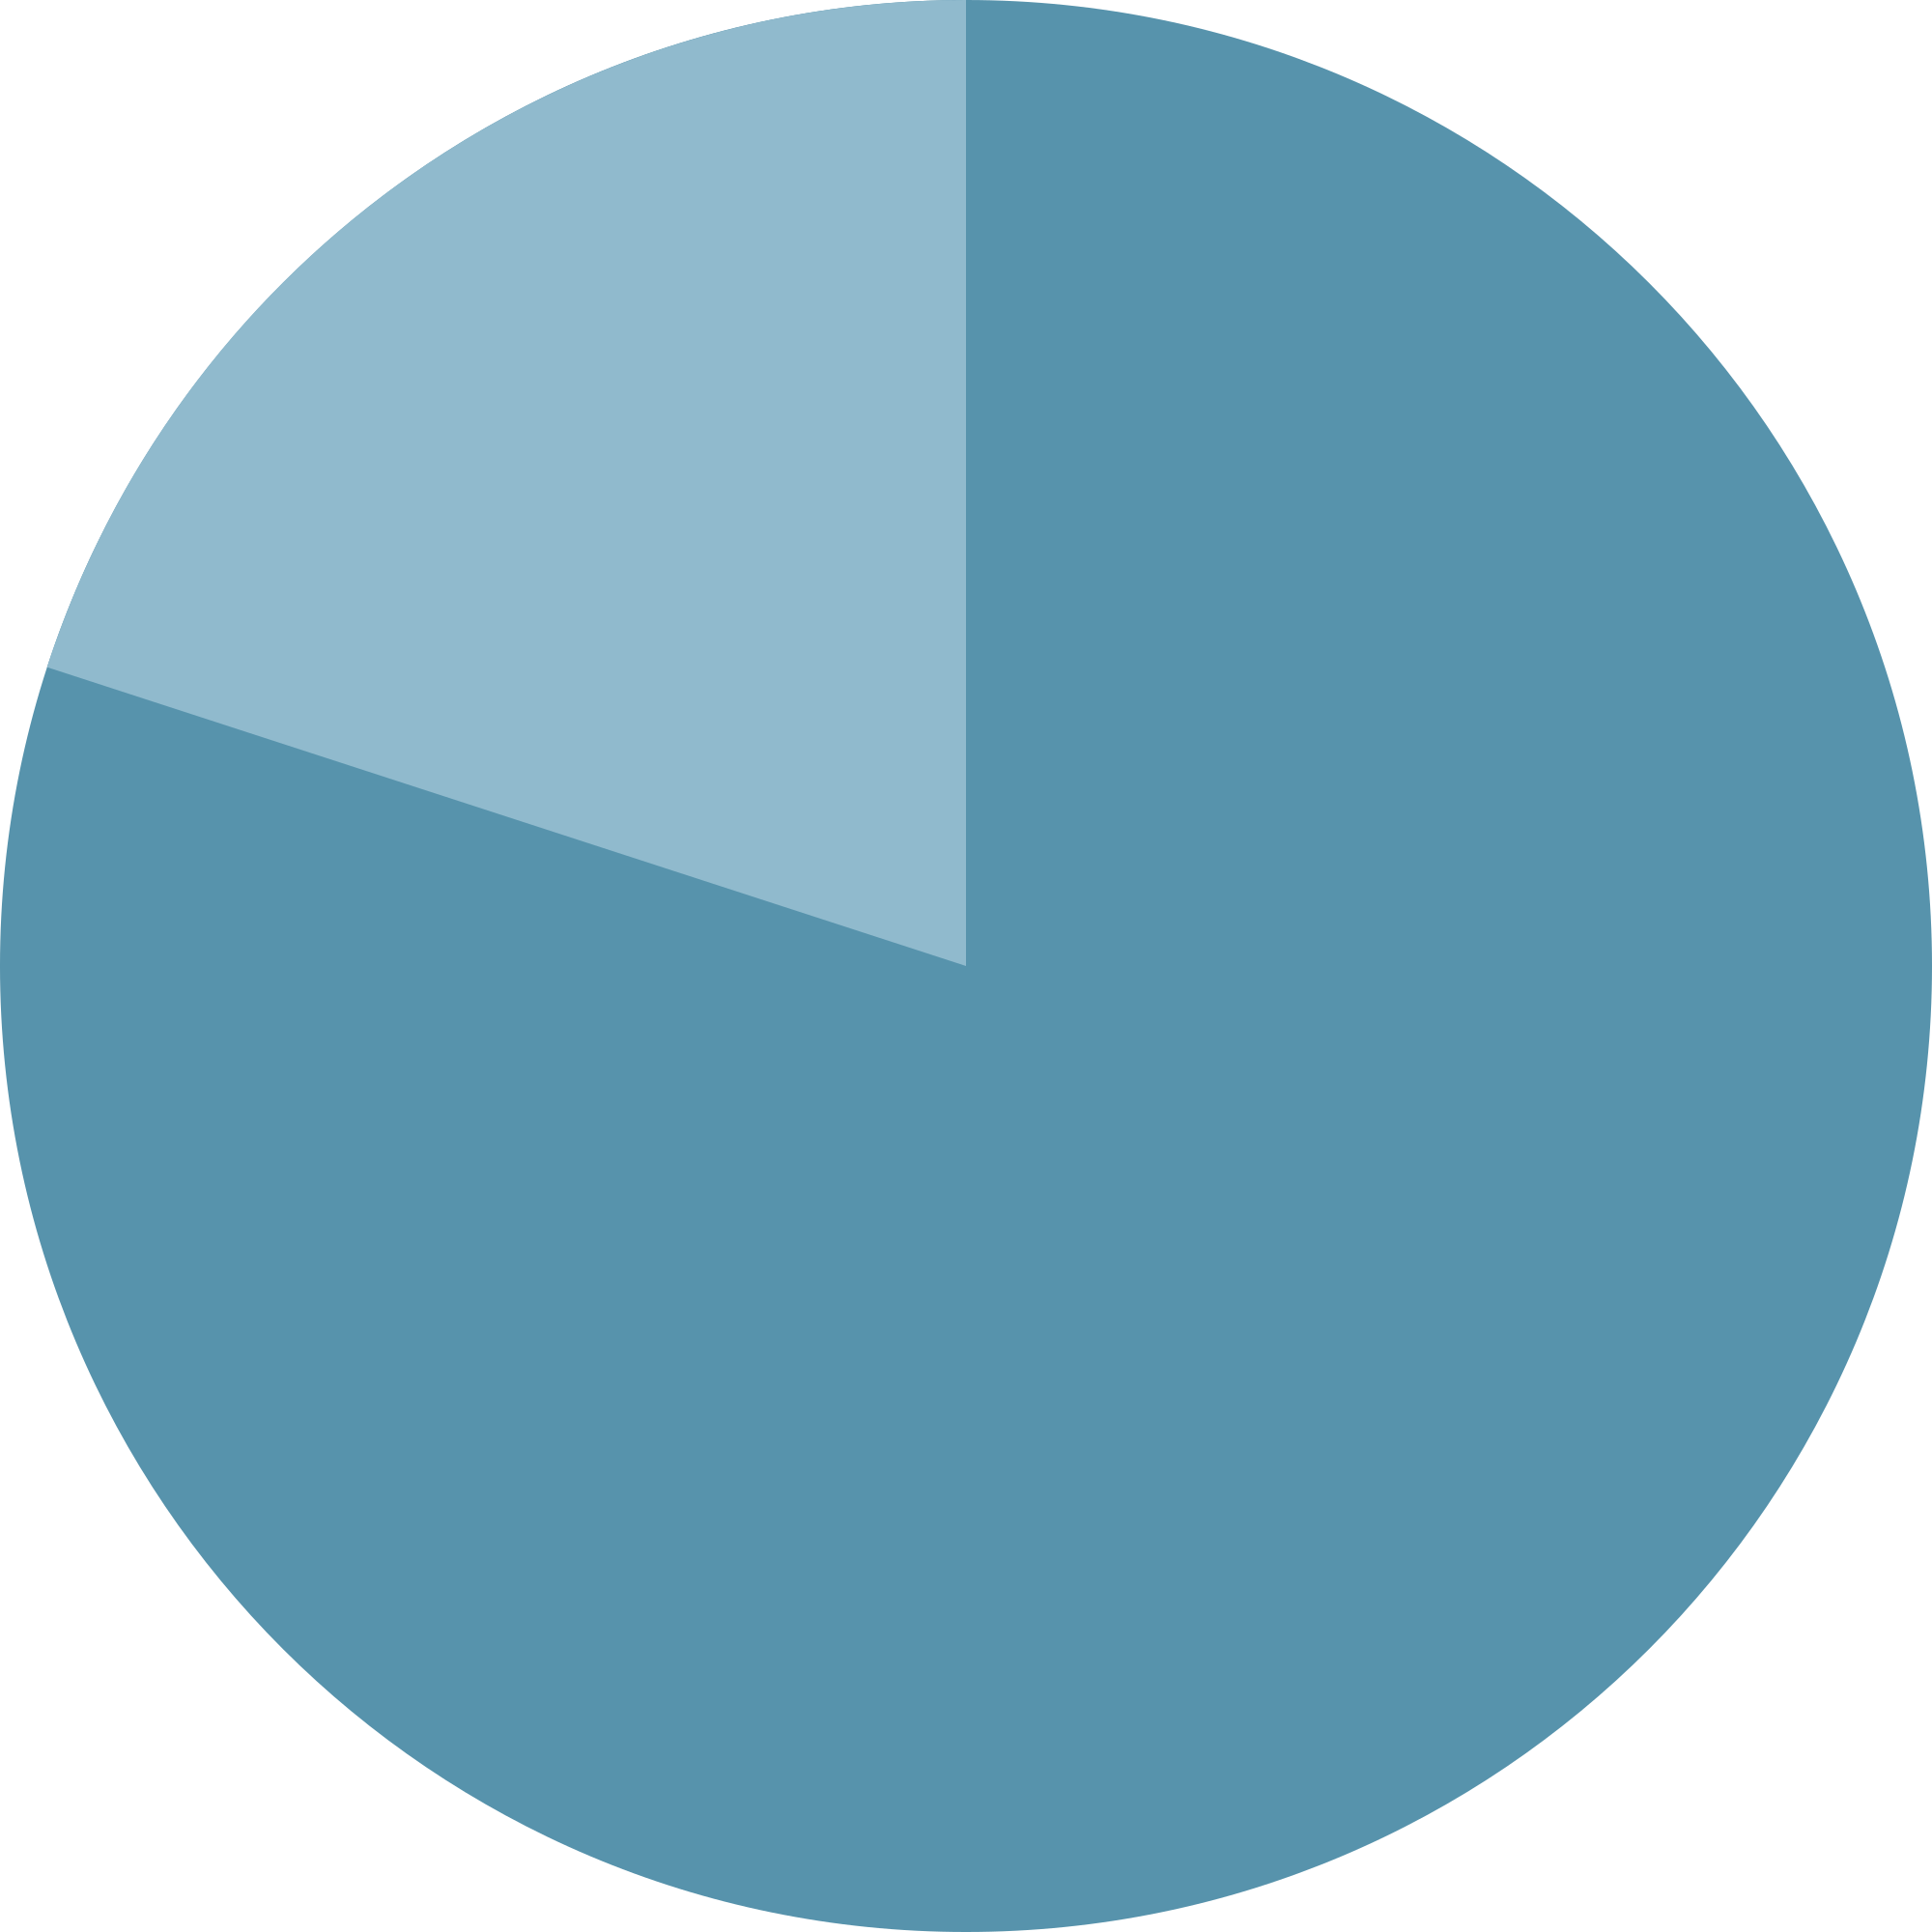 File chart wikimedia commons. Svg charts pie image royalty free stock